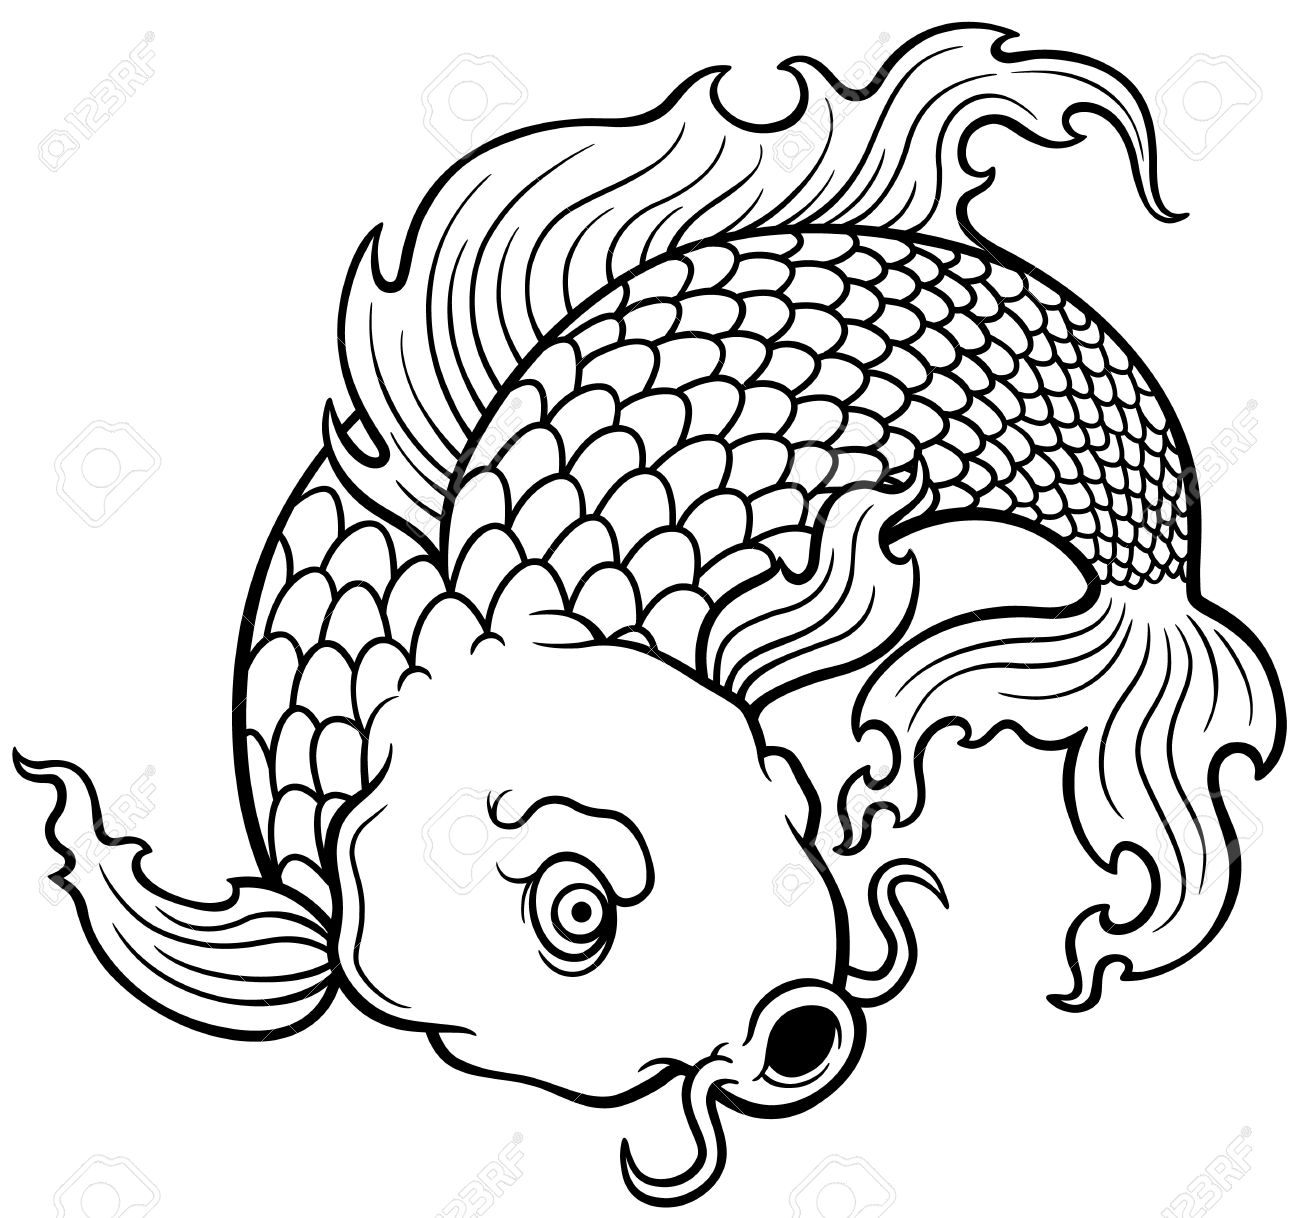 images of fish for colouring clown fish coloring page free printable pages for kids colouring fish for of images